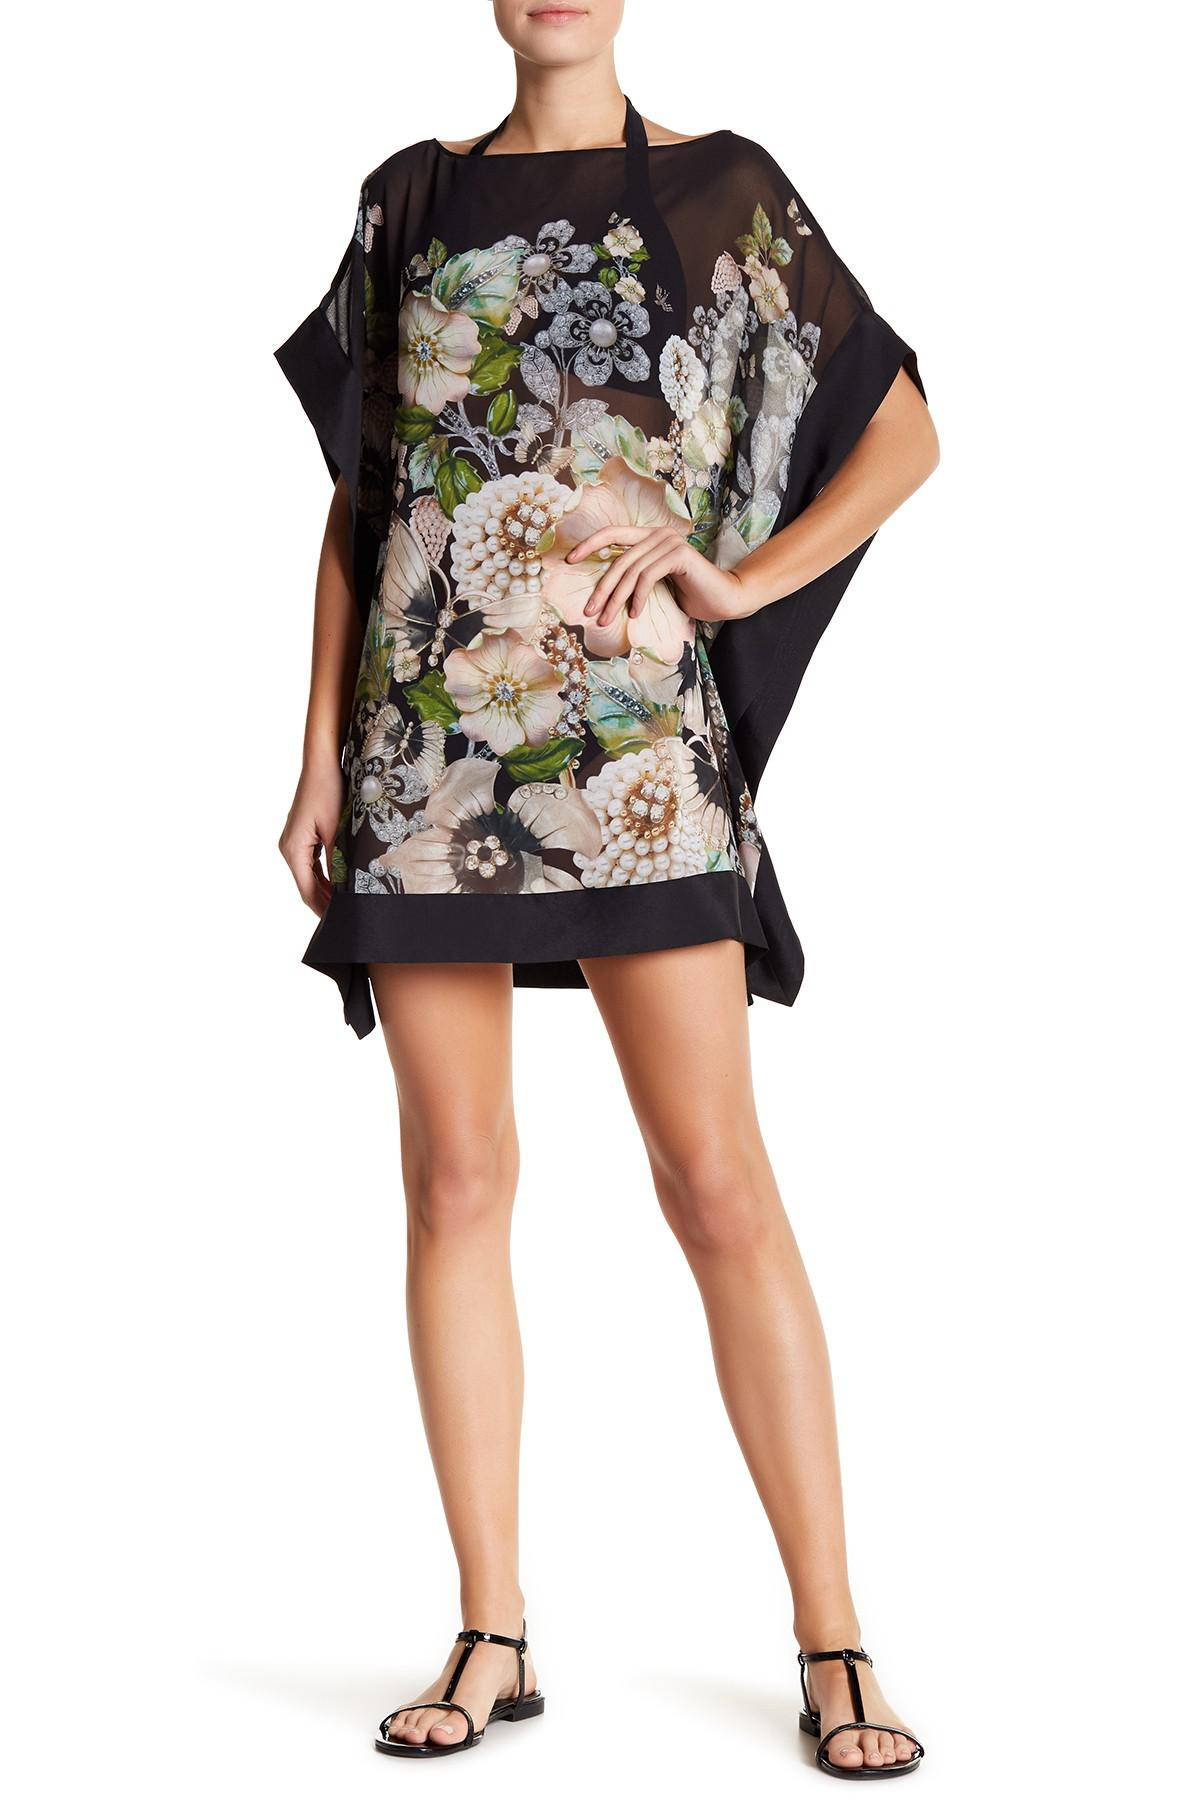 ce3978390ca0e5 Lyst - Ted Baker Gem Gardens Coverup in Black